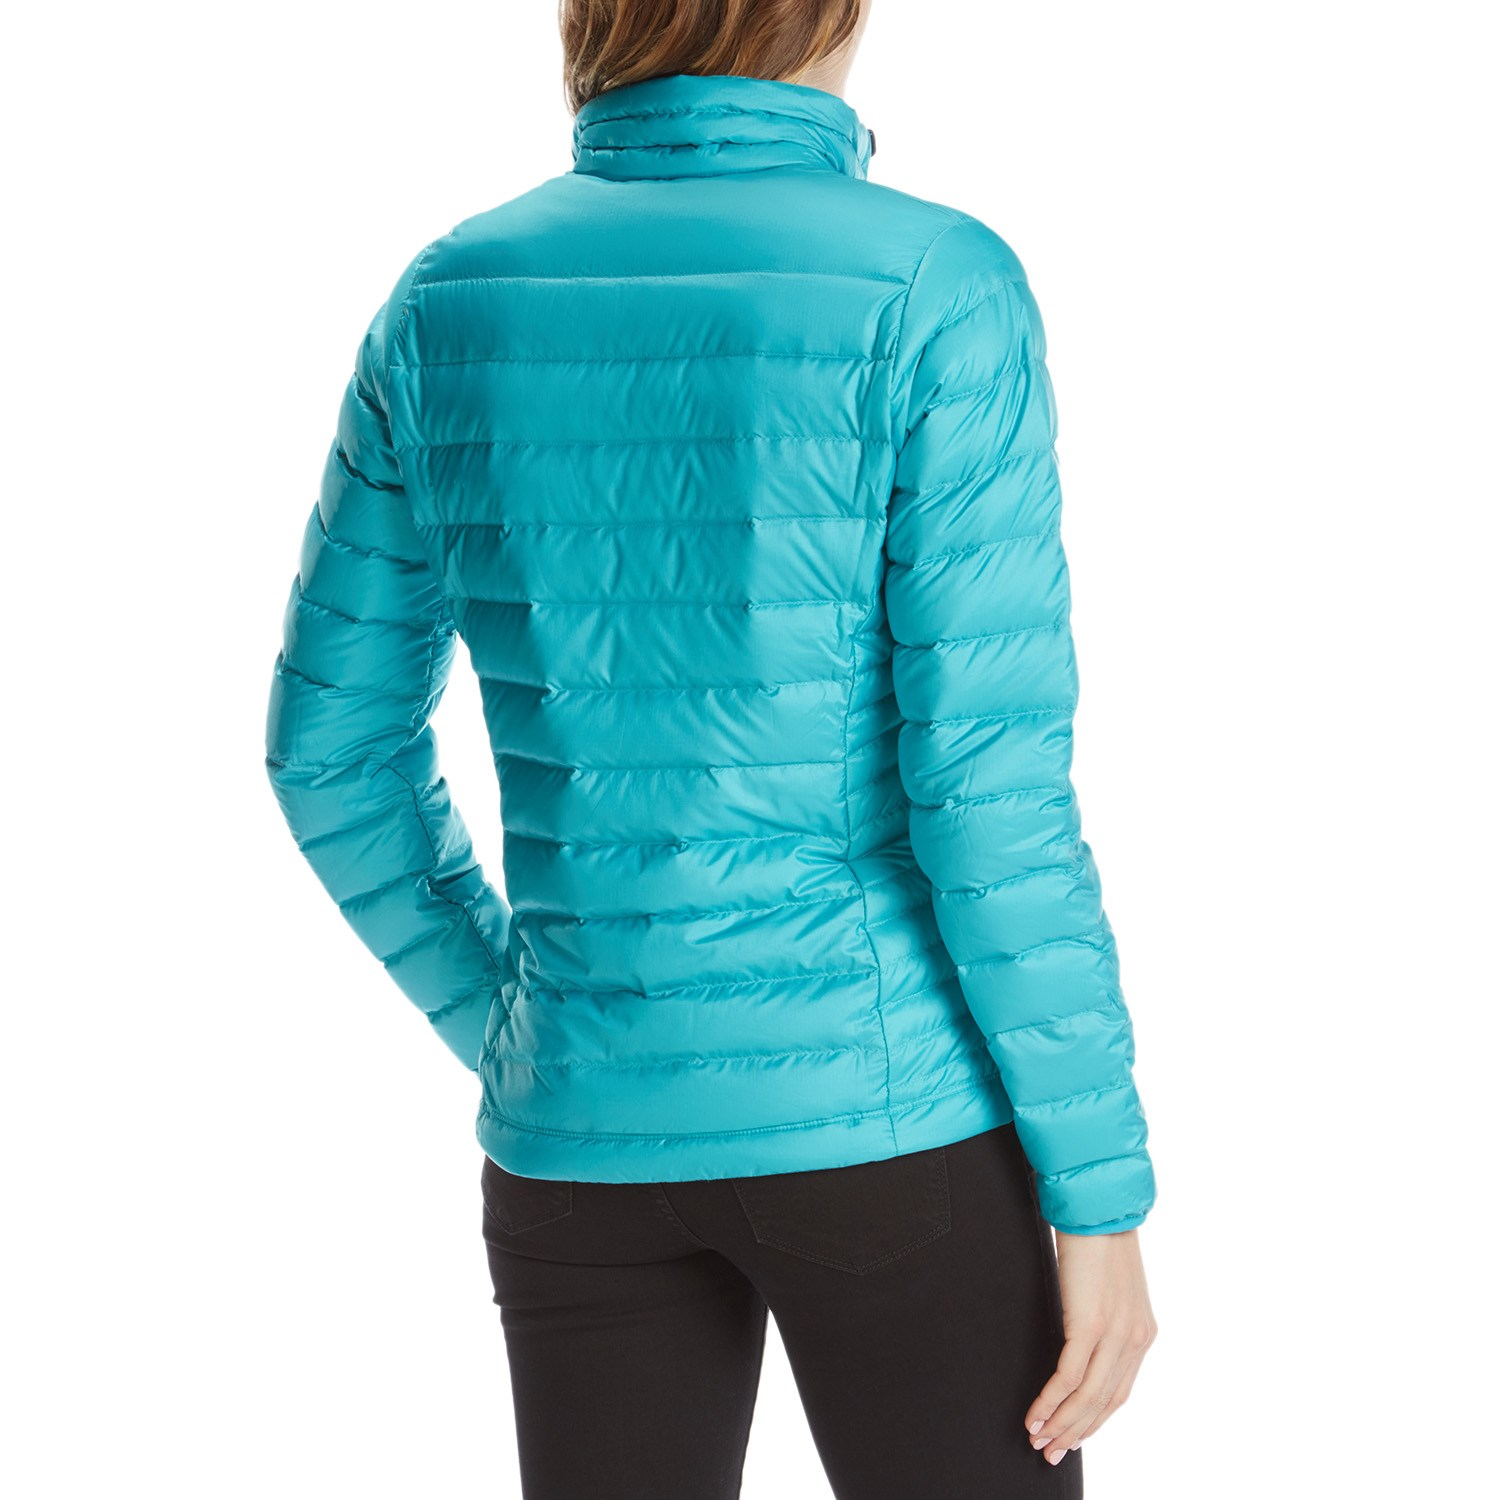 Patagonia Down Women S Jacket Jackets Review